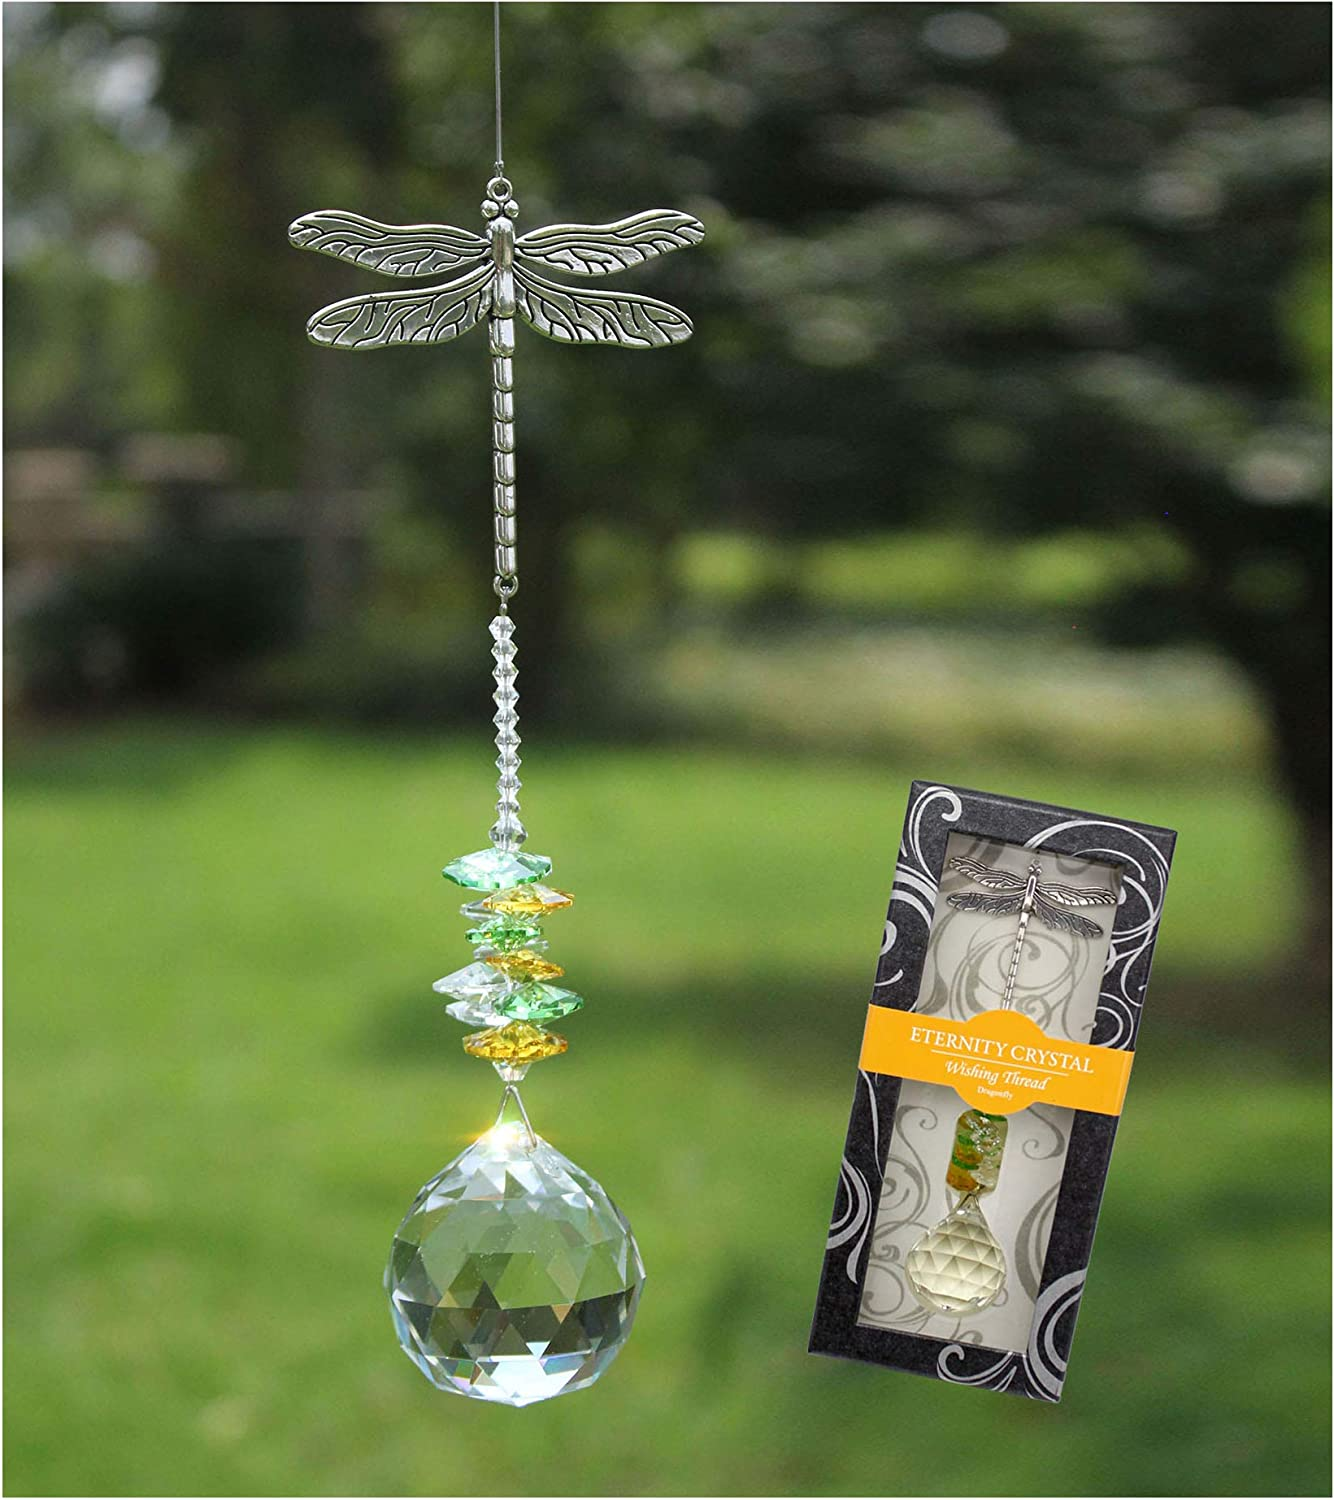 Crystal Garden Suncatcher Hanging Crystals Ornament for Window Rainbow Maker Prisms Home Decor Gift Boxed Sun Catcher Gift Idea for Mom Friends Grandma, Dragonfly